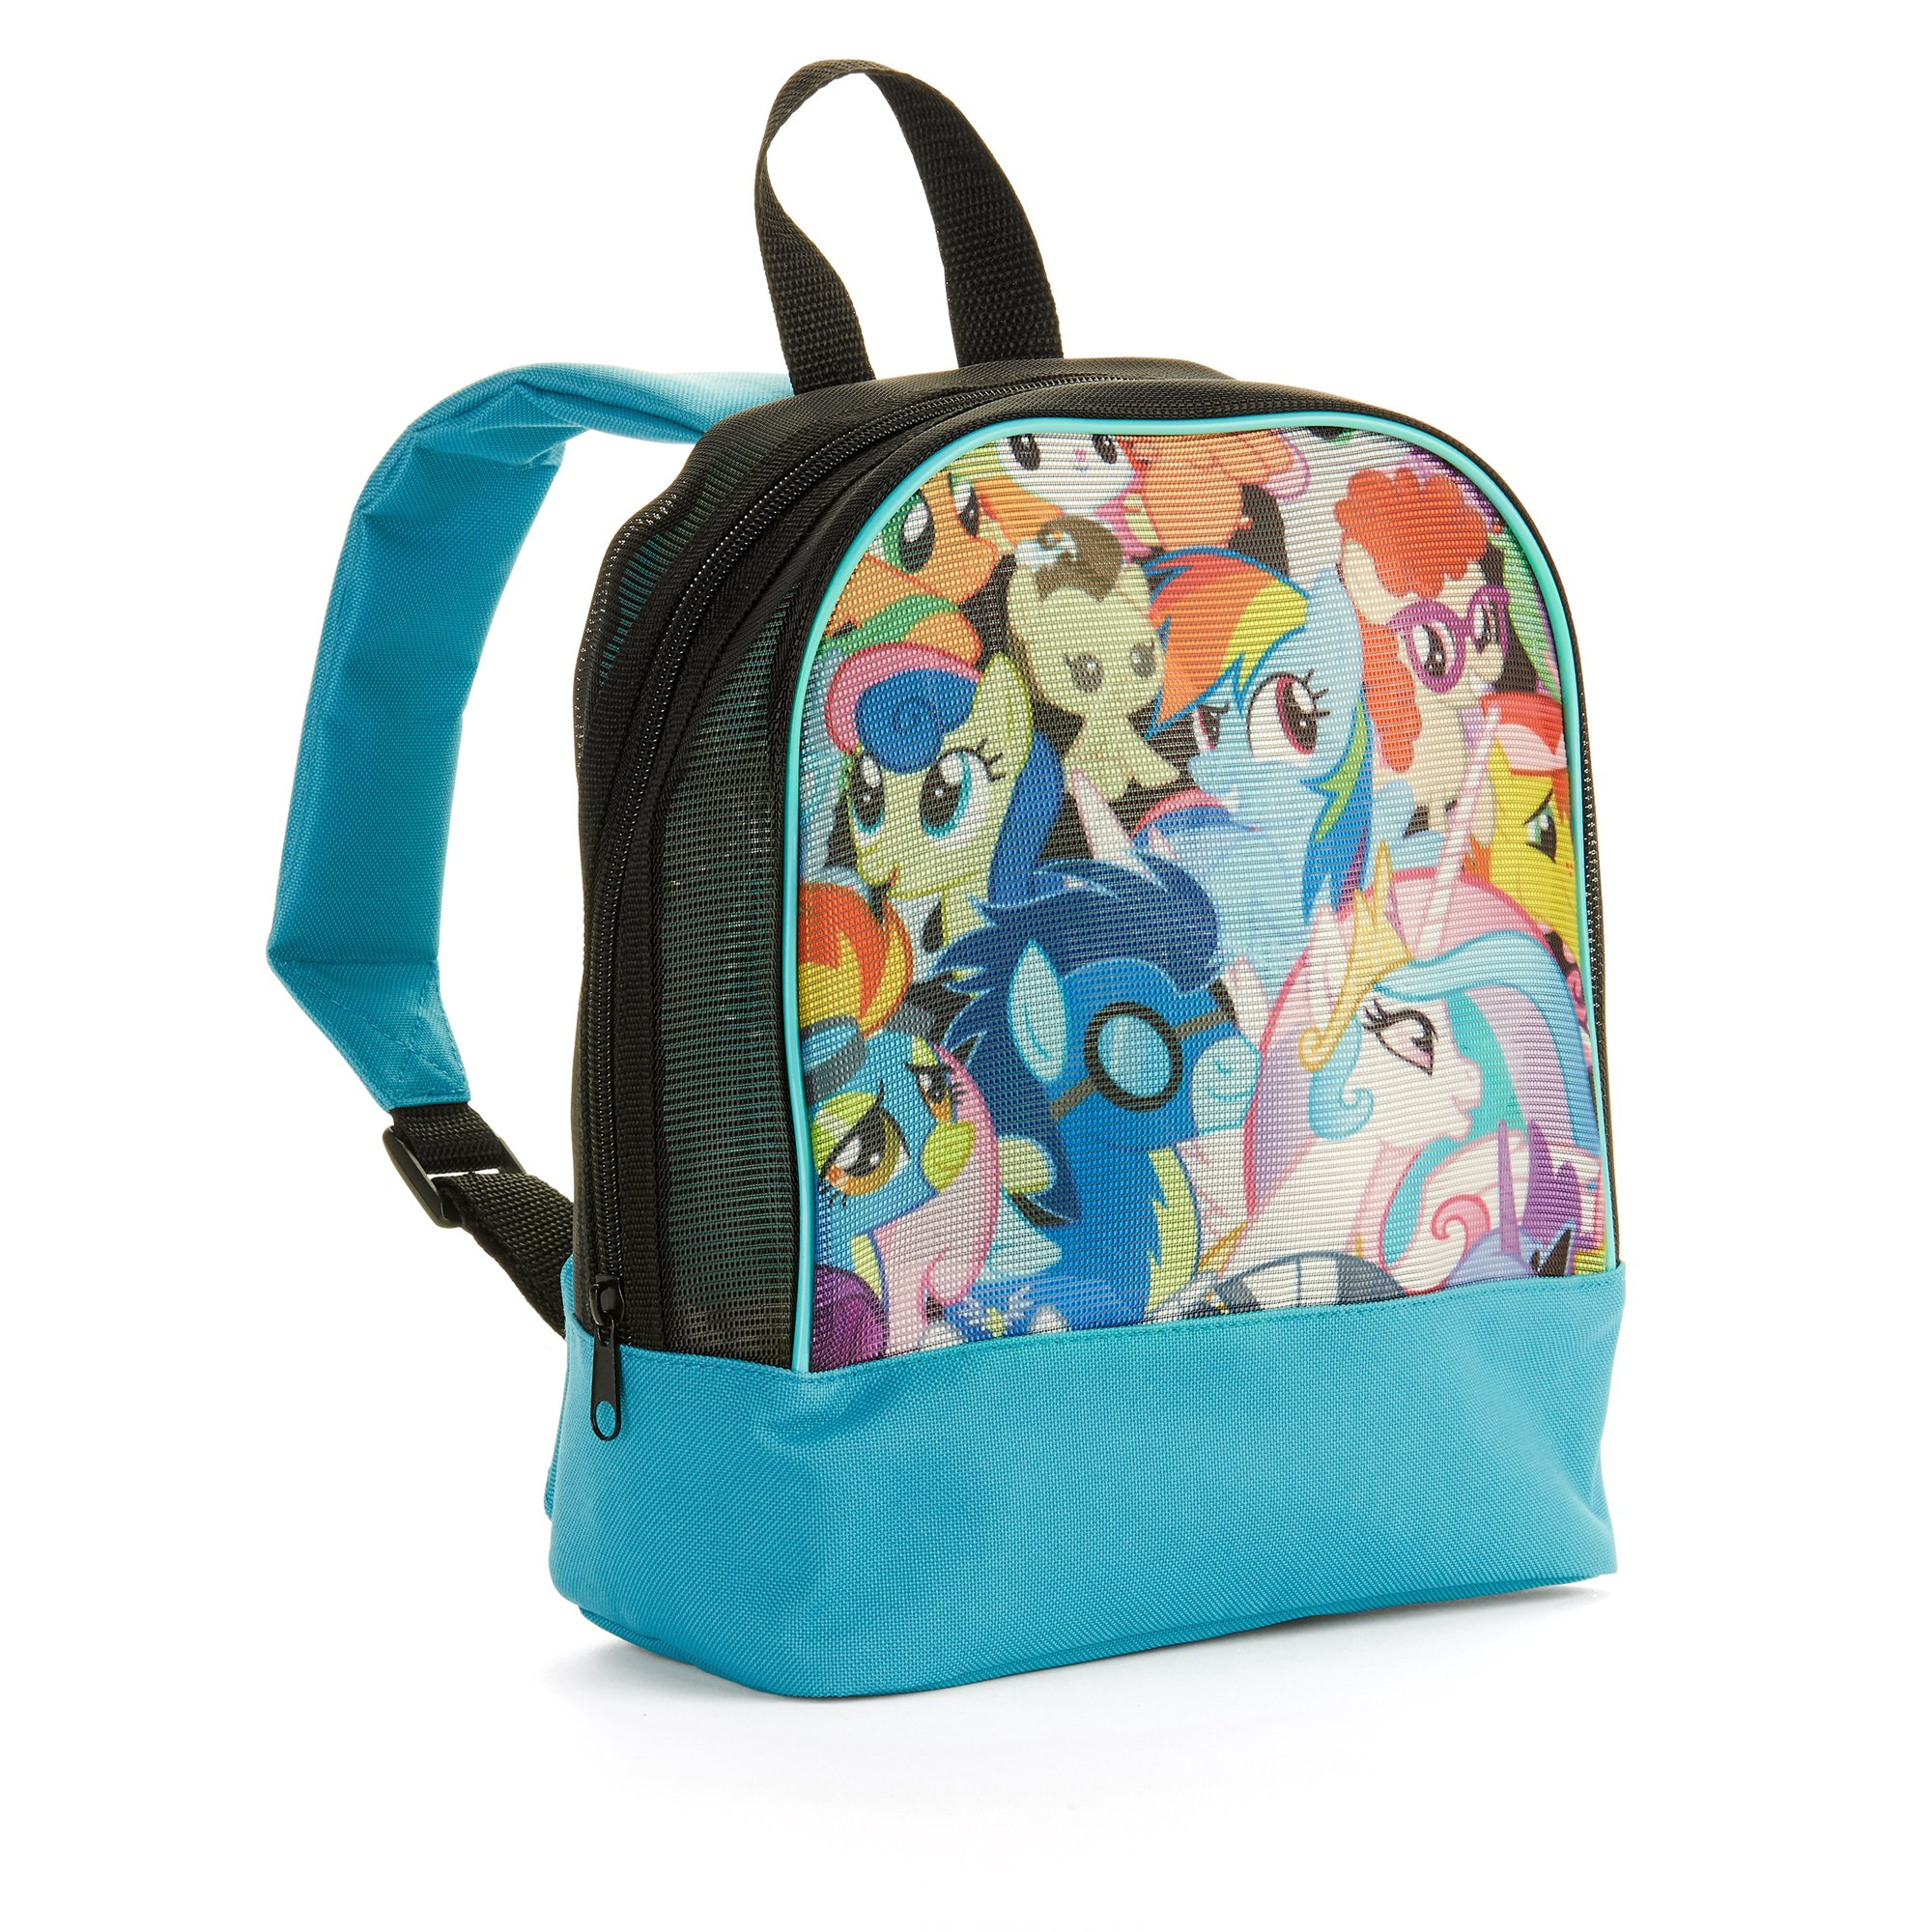 6aba08509abcc Buy My Little Pony Mesh Mini Backpack | Cheapest My Little Pony ...